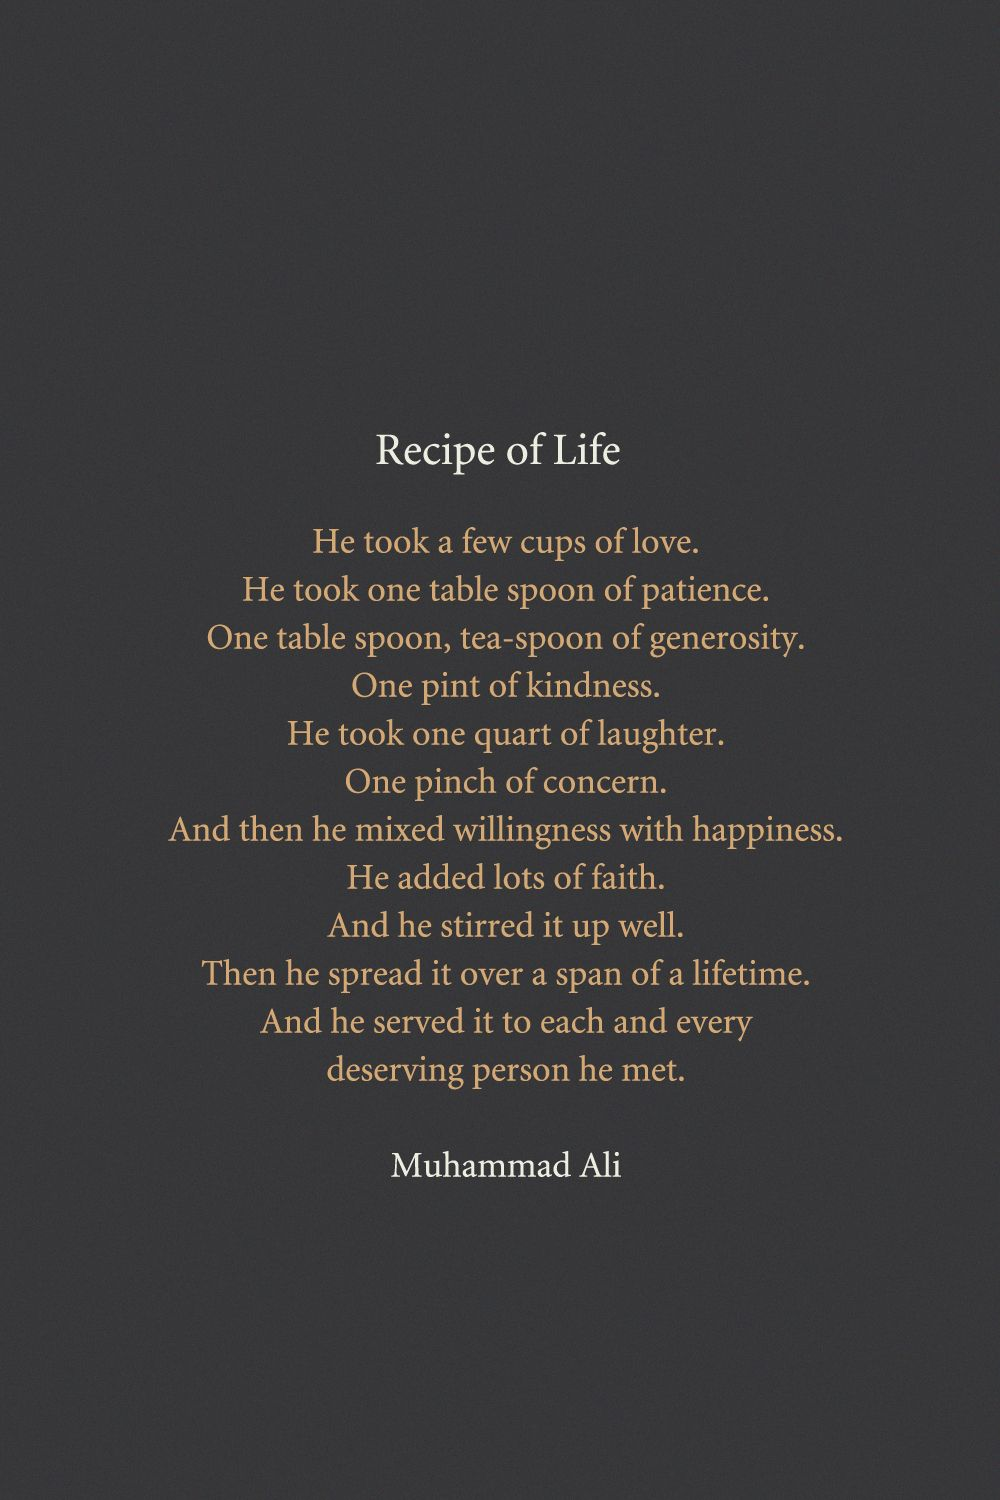 recipe for life muhammad ali food for thought pinterest